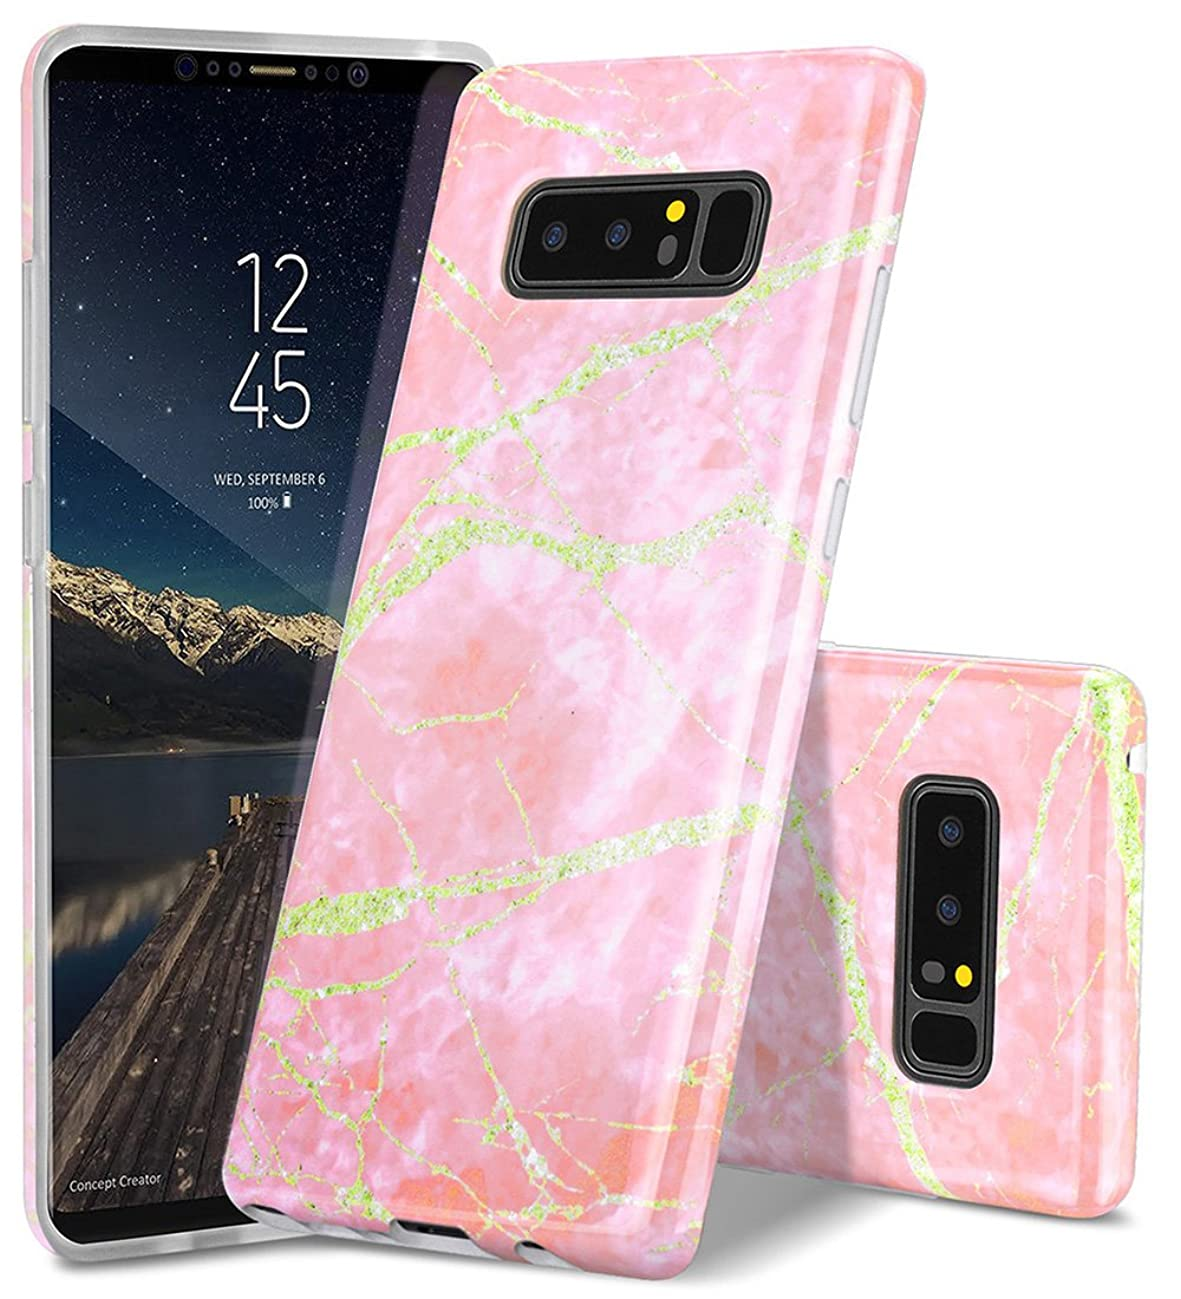 WORLDMOM Galaxy Note 8 Case, Luxury Marble Lightning Texture Design Slim Soft Flexible TPU Rubber Hybrid Shockproof Protective Phone Case for Samsung Galaxy Note 8 (2017), Pink